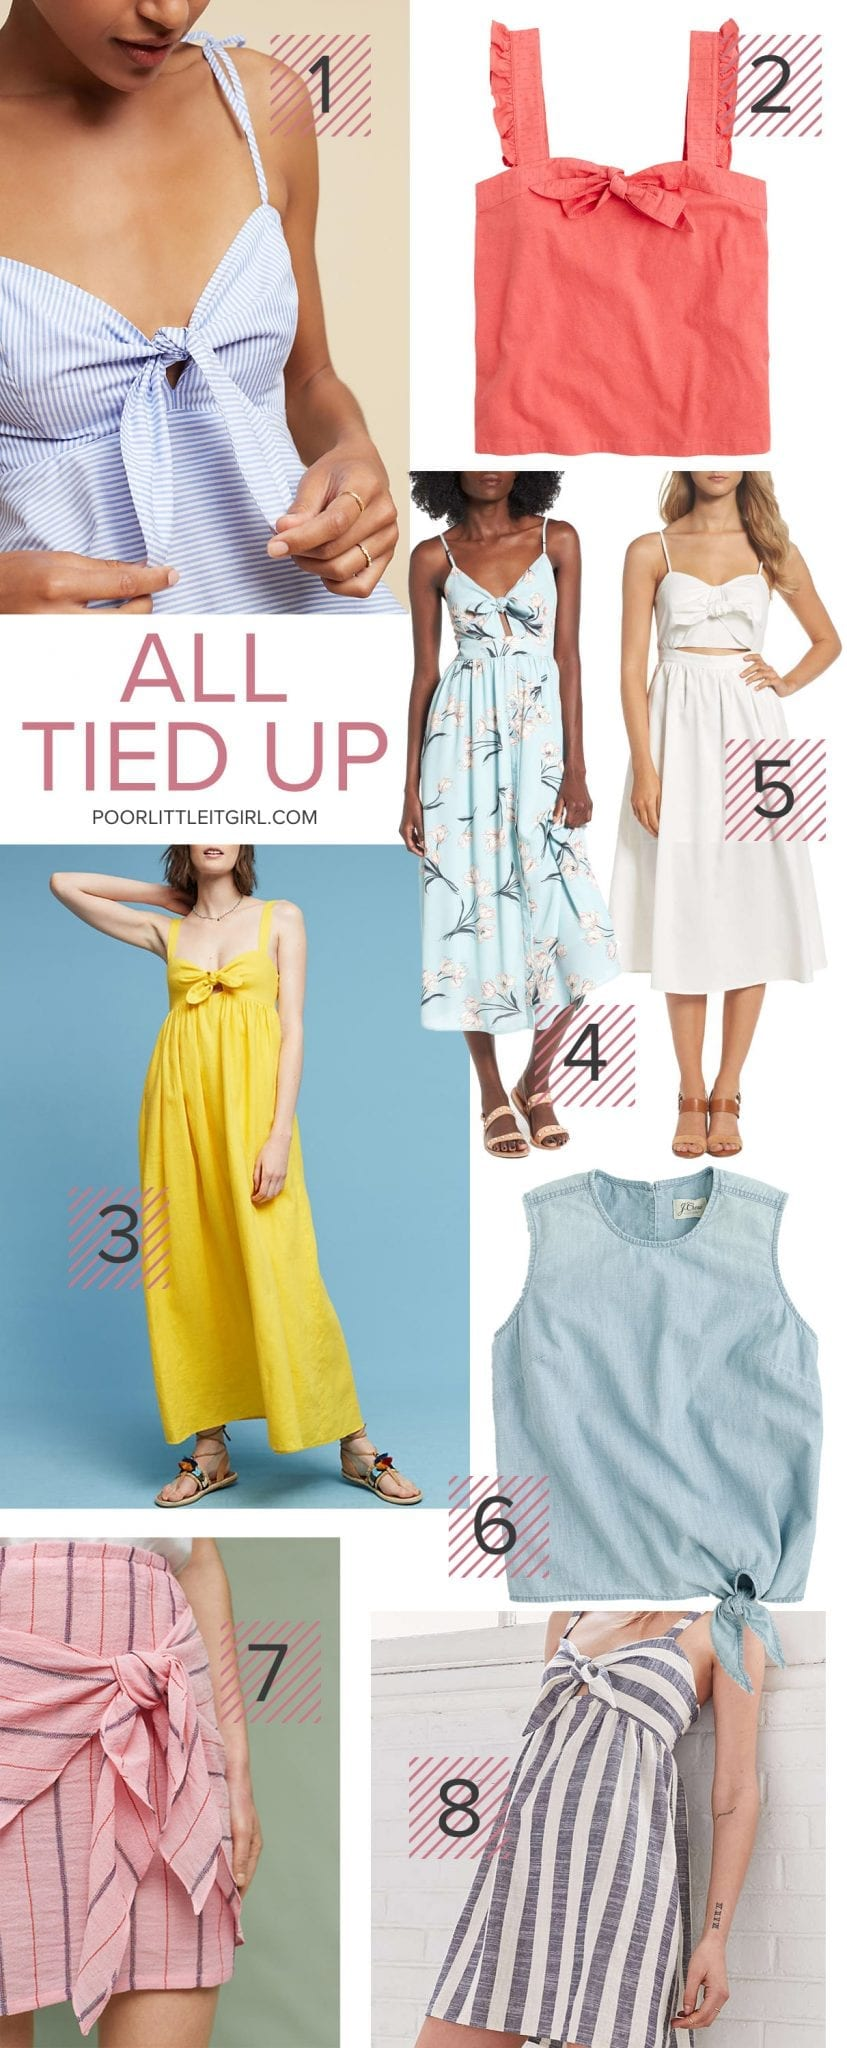 Tie Front Tops and Dresses - Summer Style Trend - Poor Little It Girl